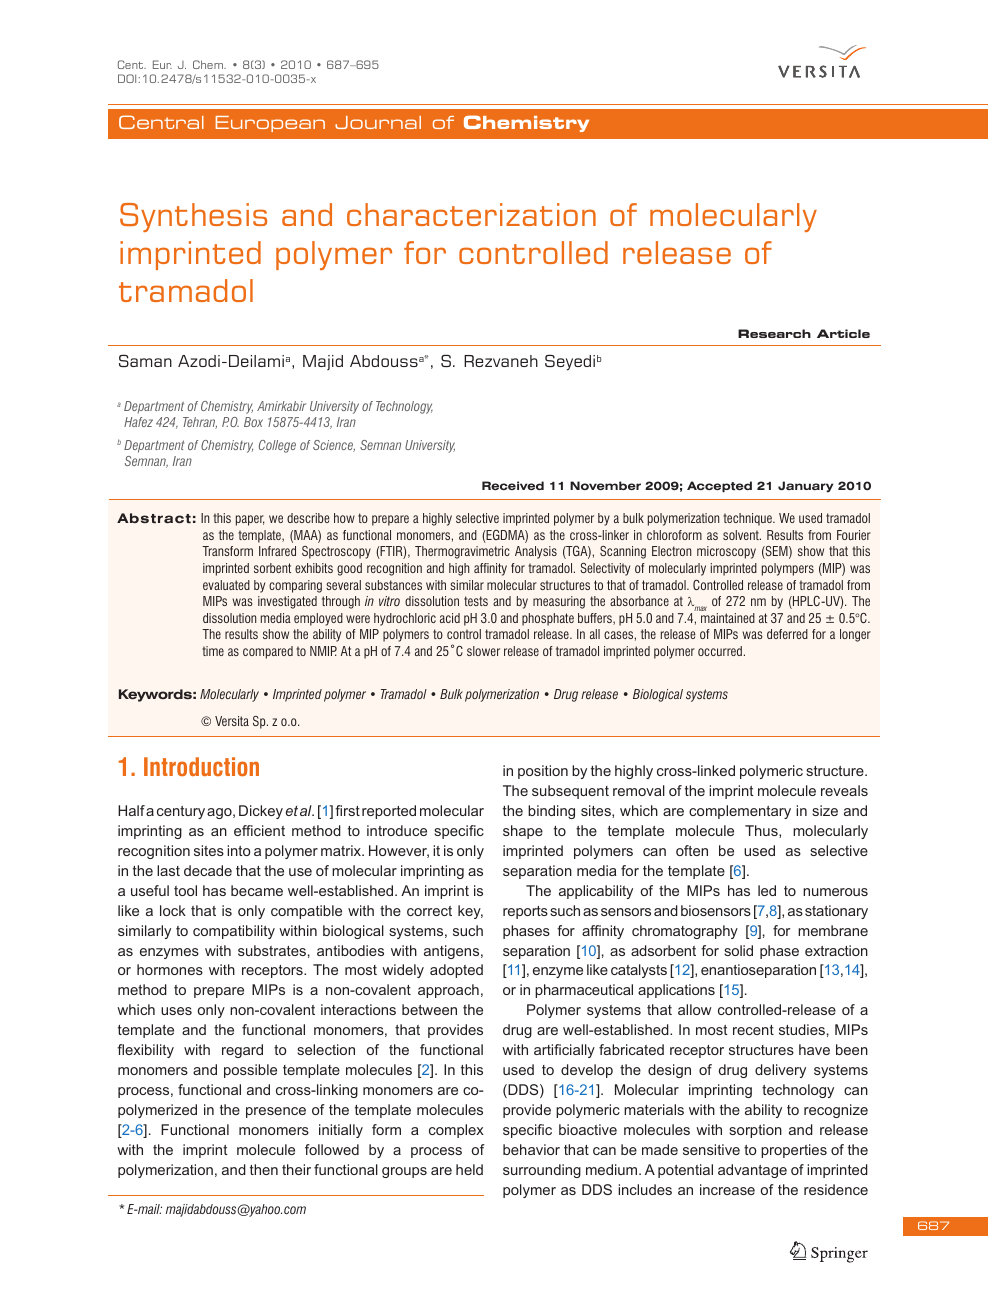 Synthesis and characterization of molecularly imprinted